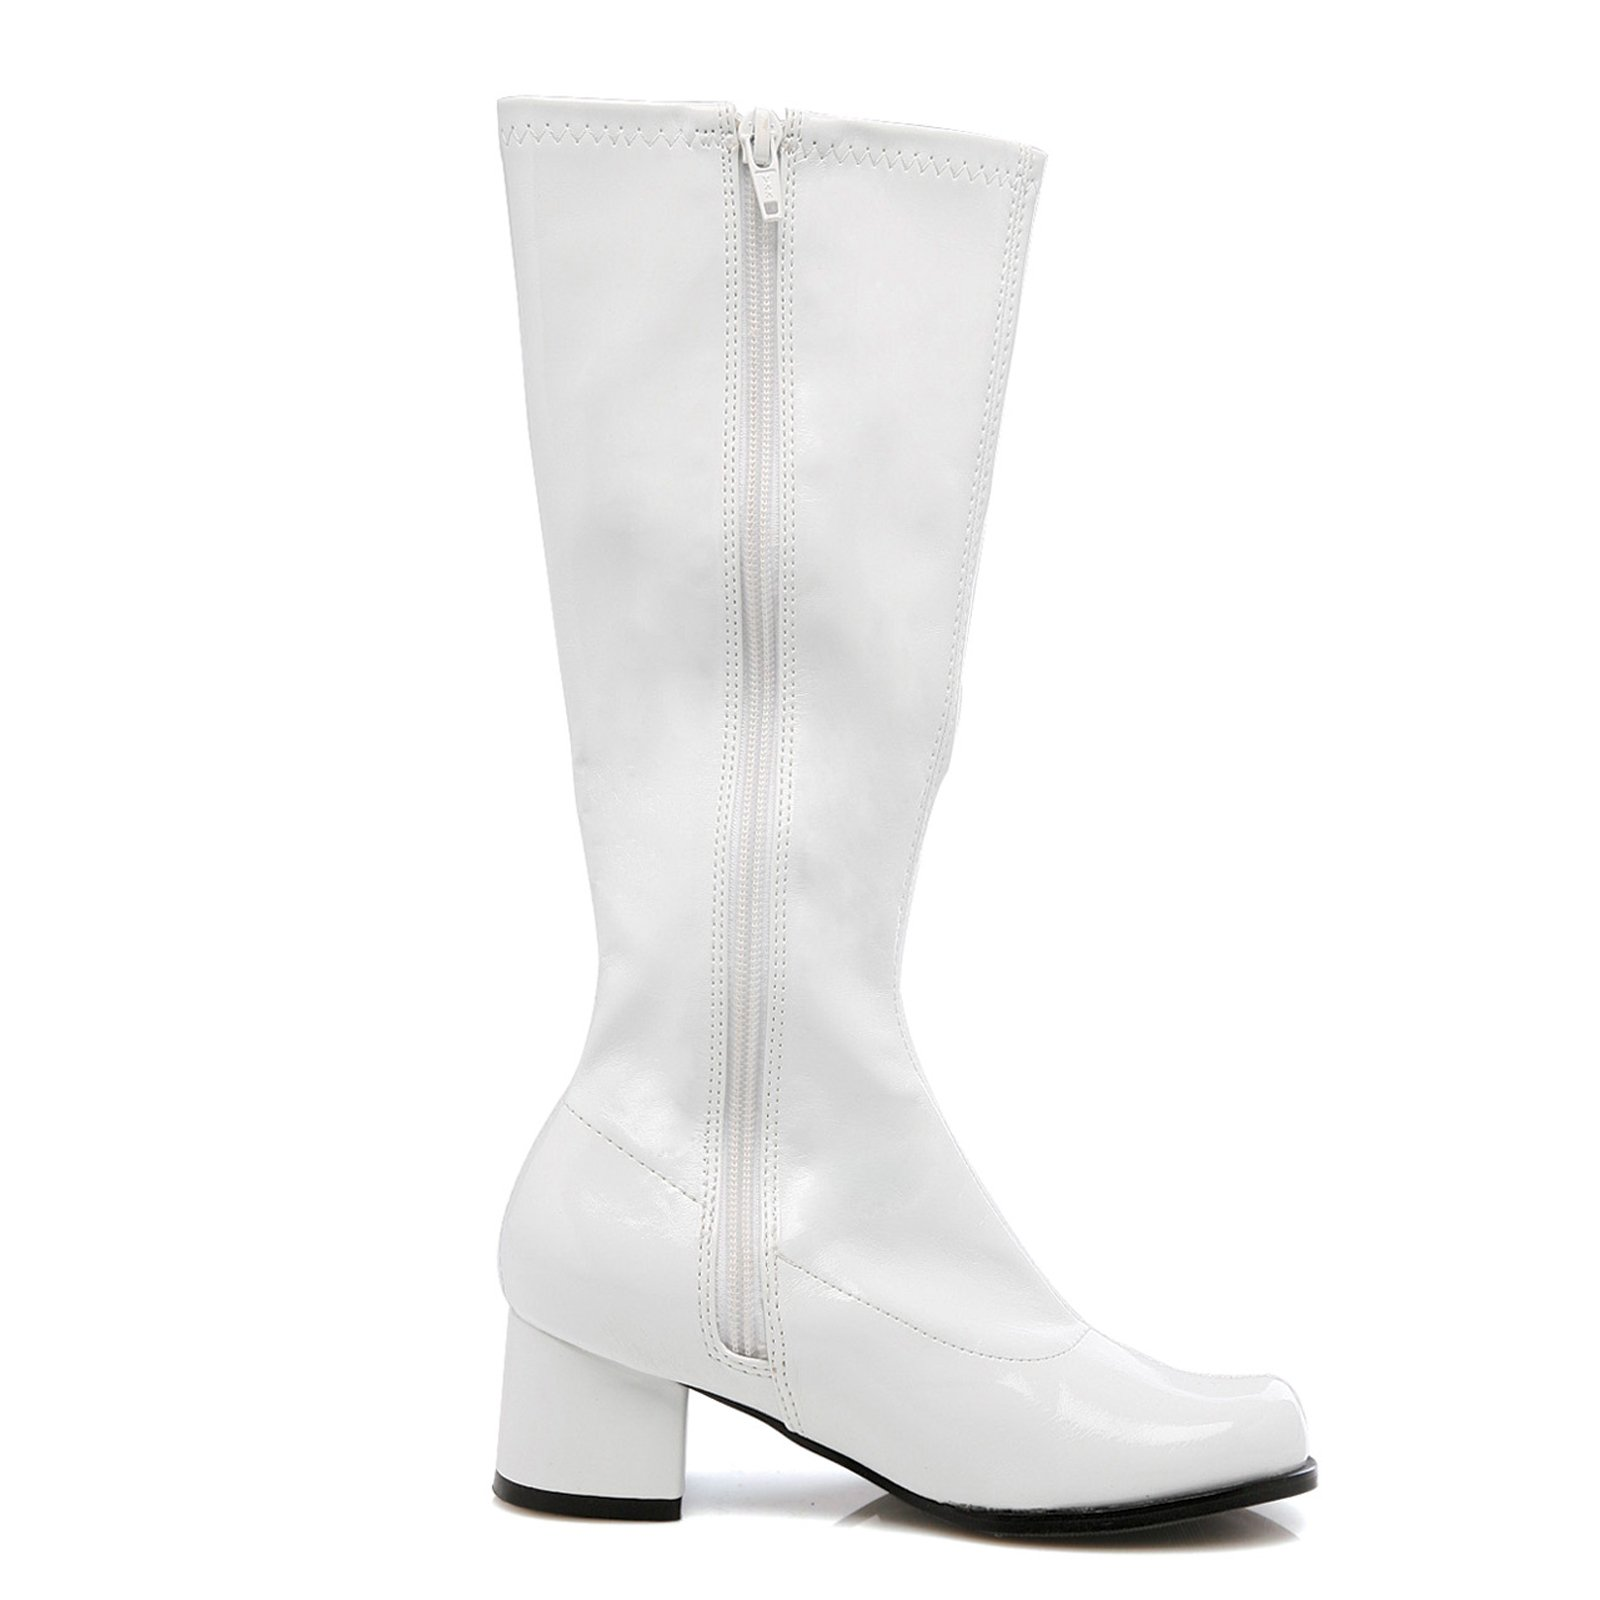 """Dora Girls White 1.75"""" Go Go Boots by ELLIE SHOES"""